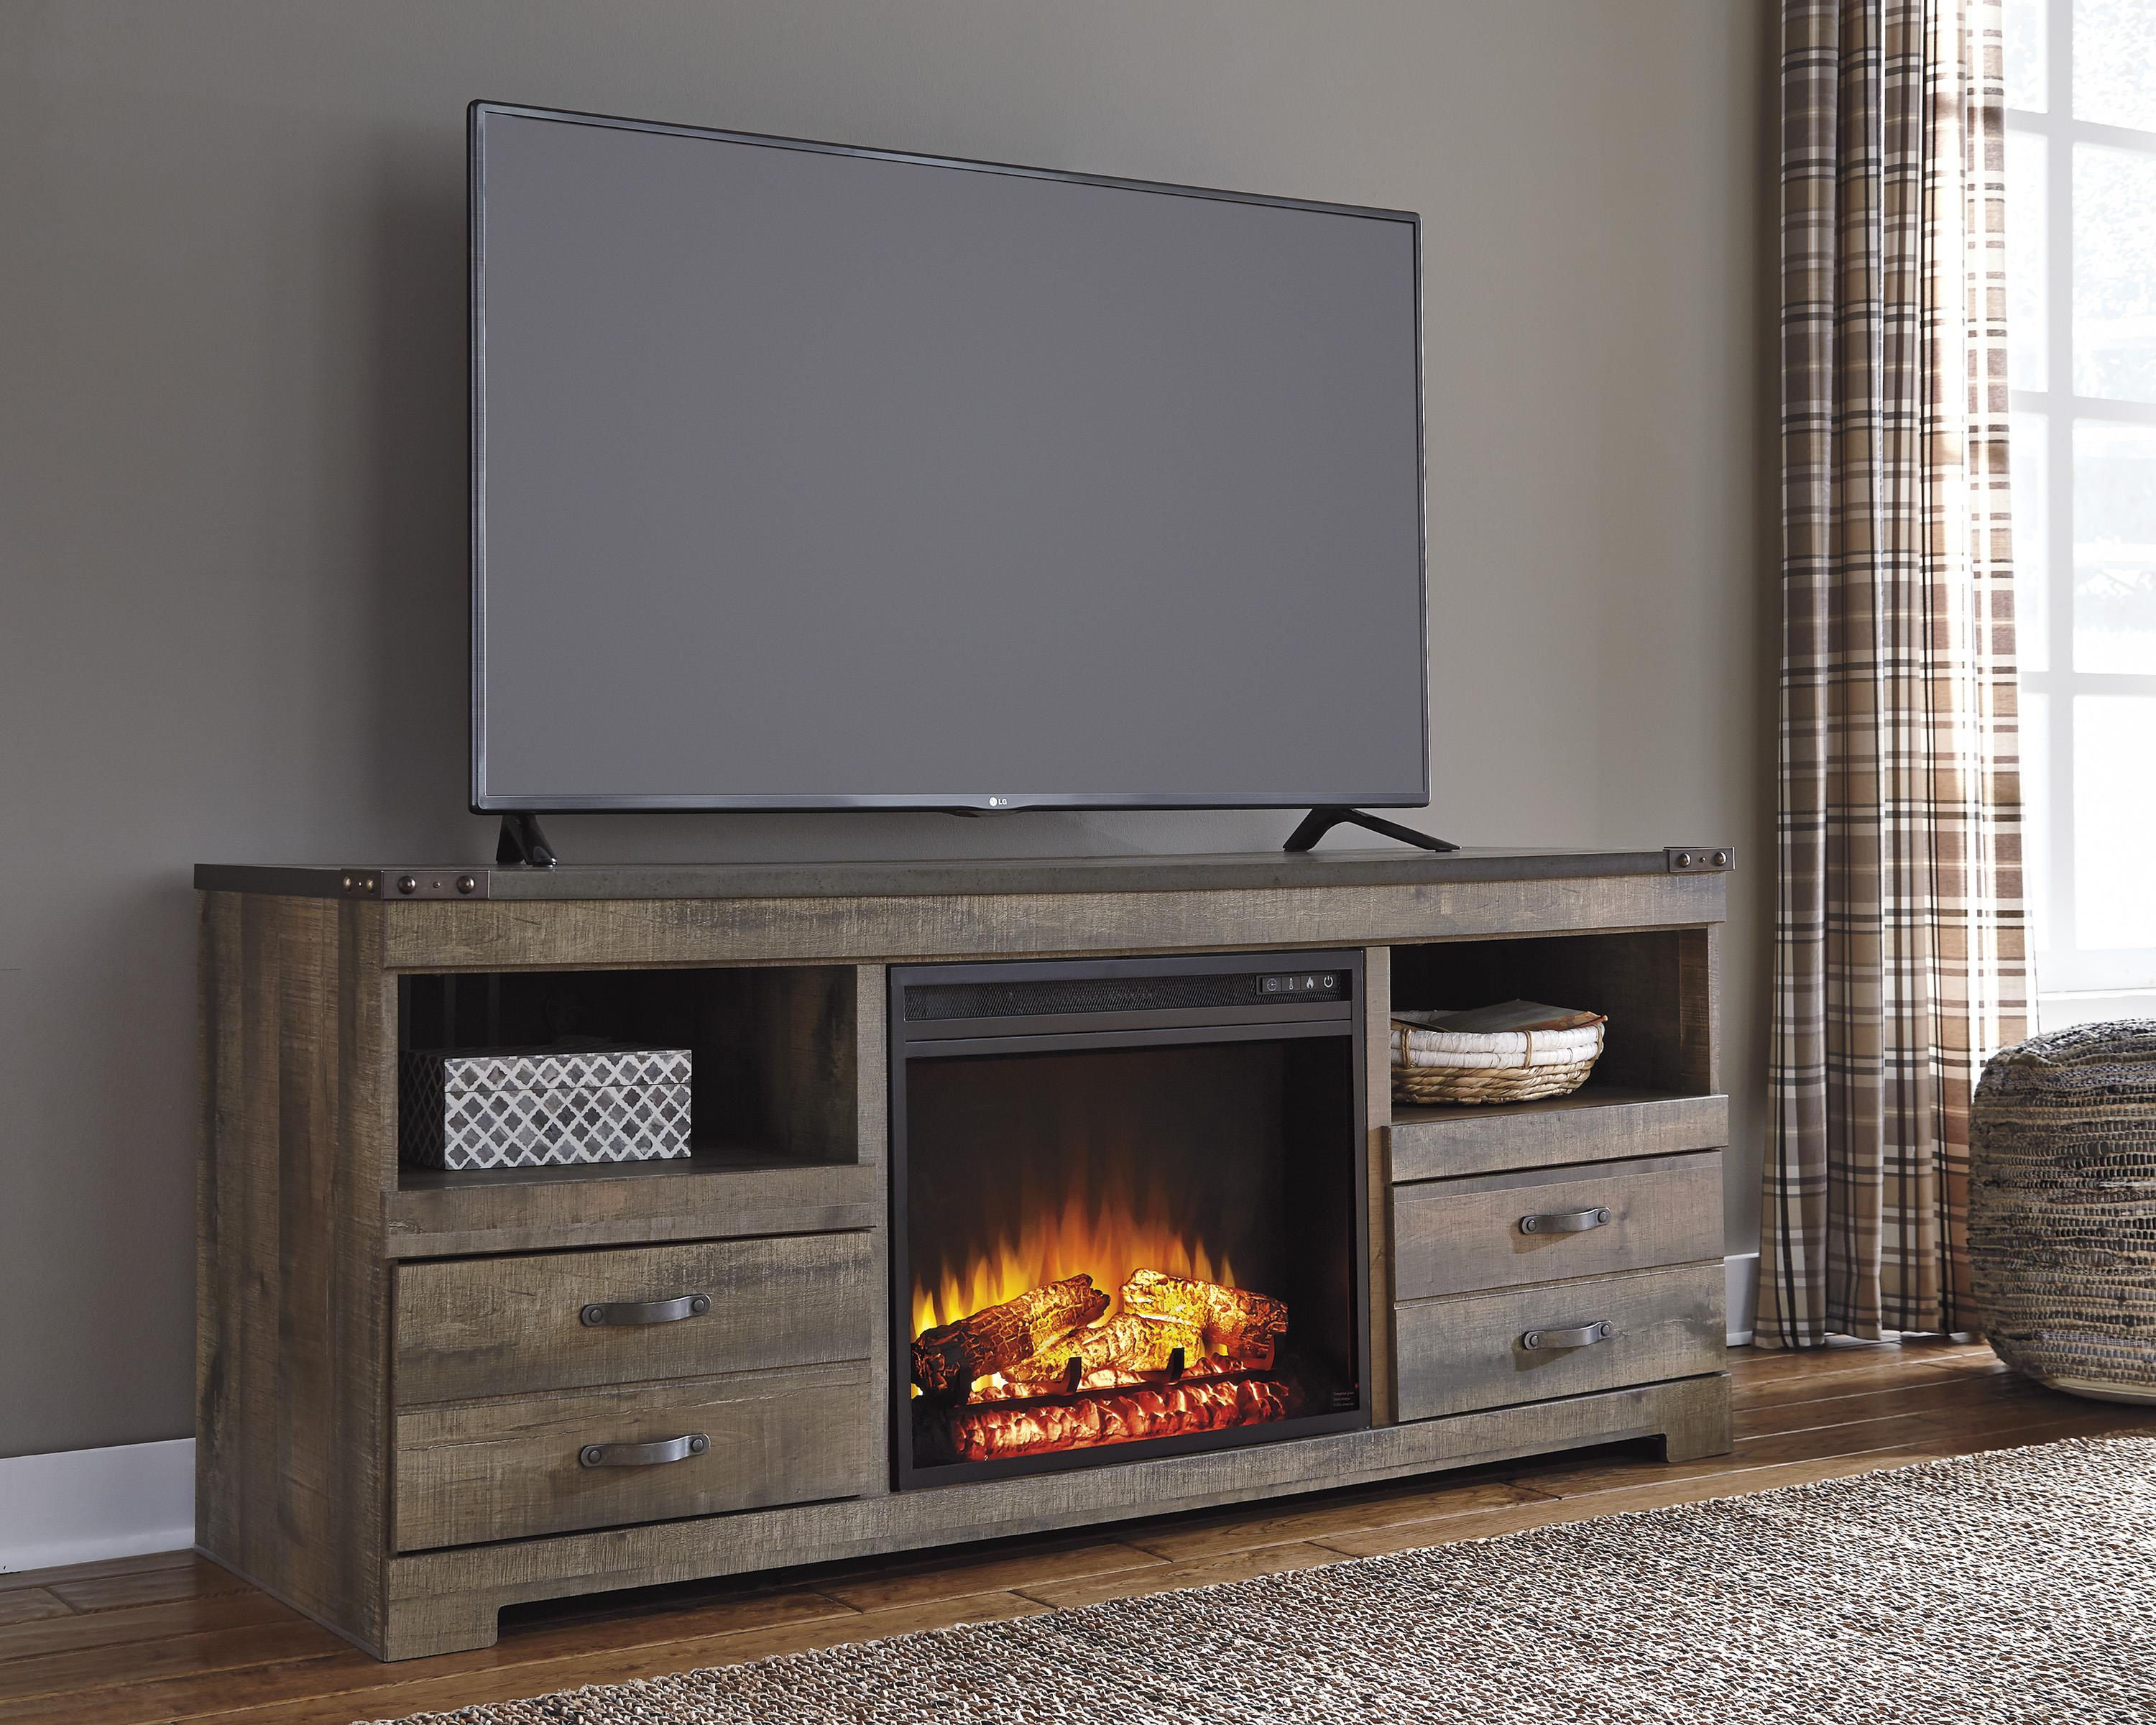 Rustic Large Tv Stand With Fireplace Insert By Signature Design By Ashley Wolf And Gardiner